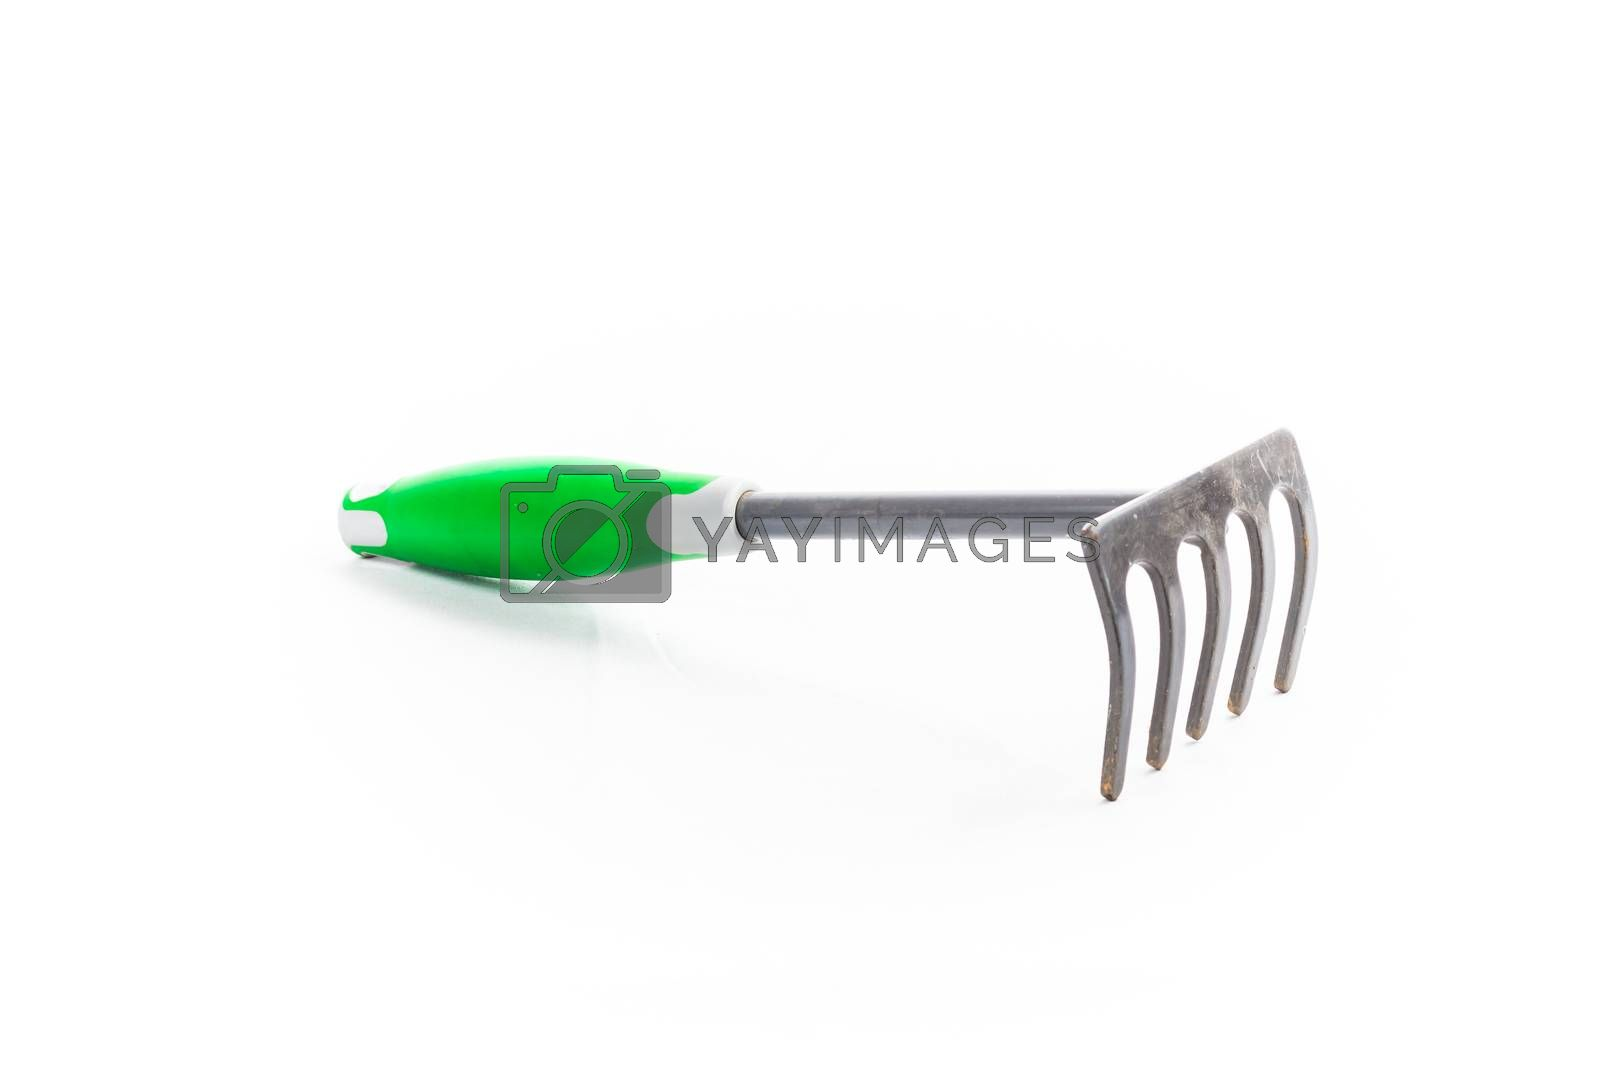 small rake gardening 5 teeth with green handle on white background